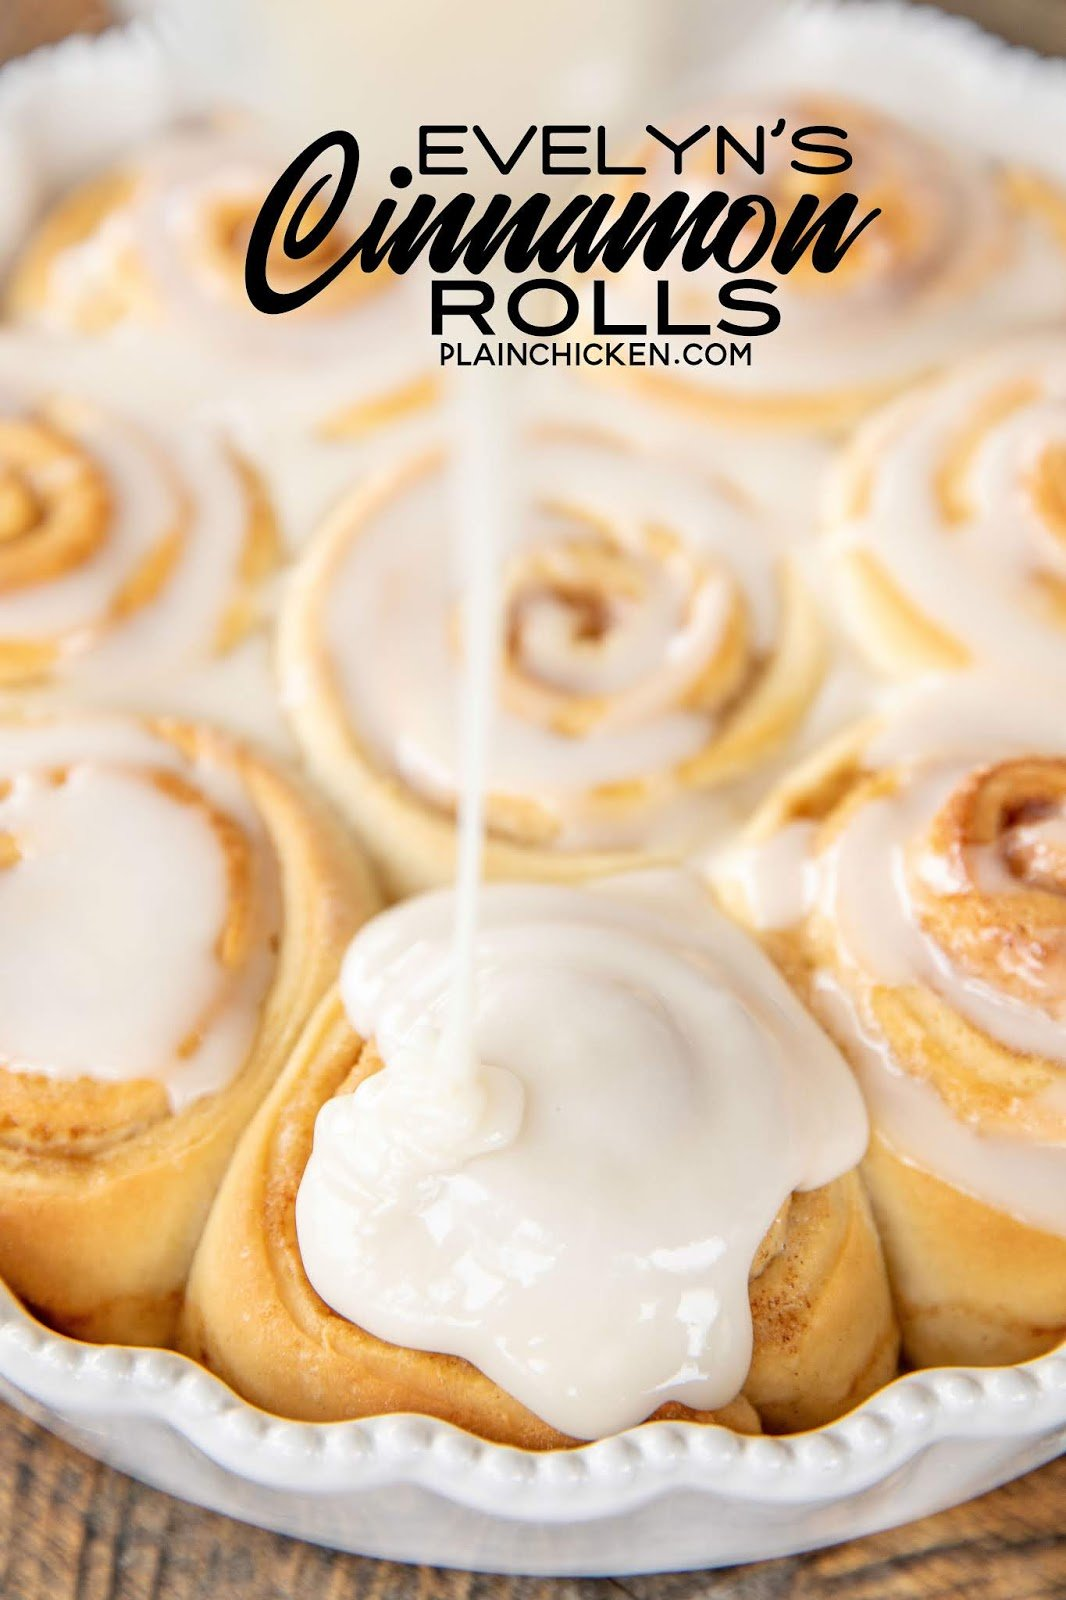 Pouring icing on homemade cinnamon rolls